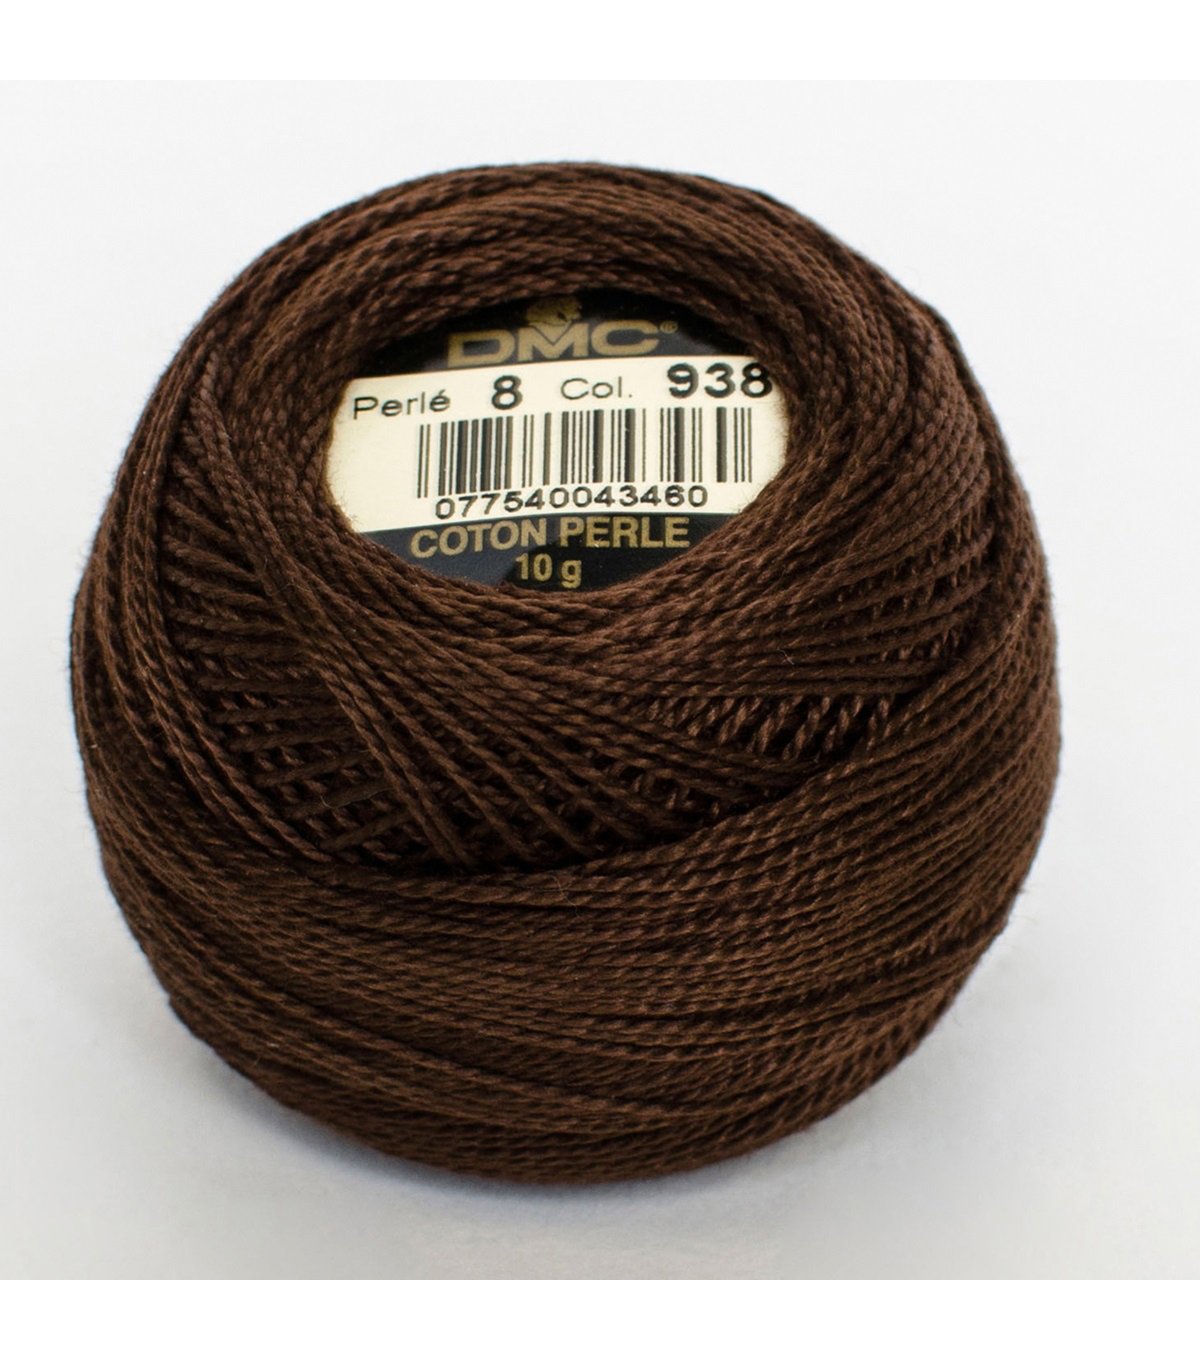 DMC Pearl Cotton Balls Thread 87 Yds Size 8, Dark Coffee Brown